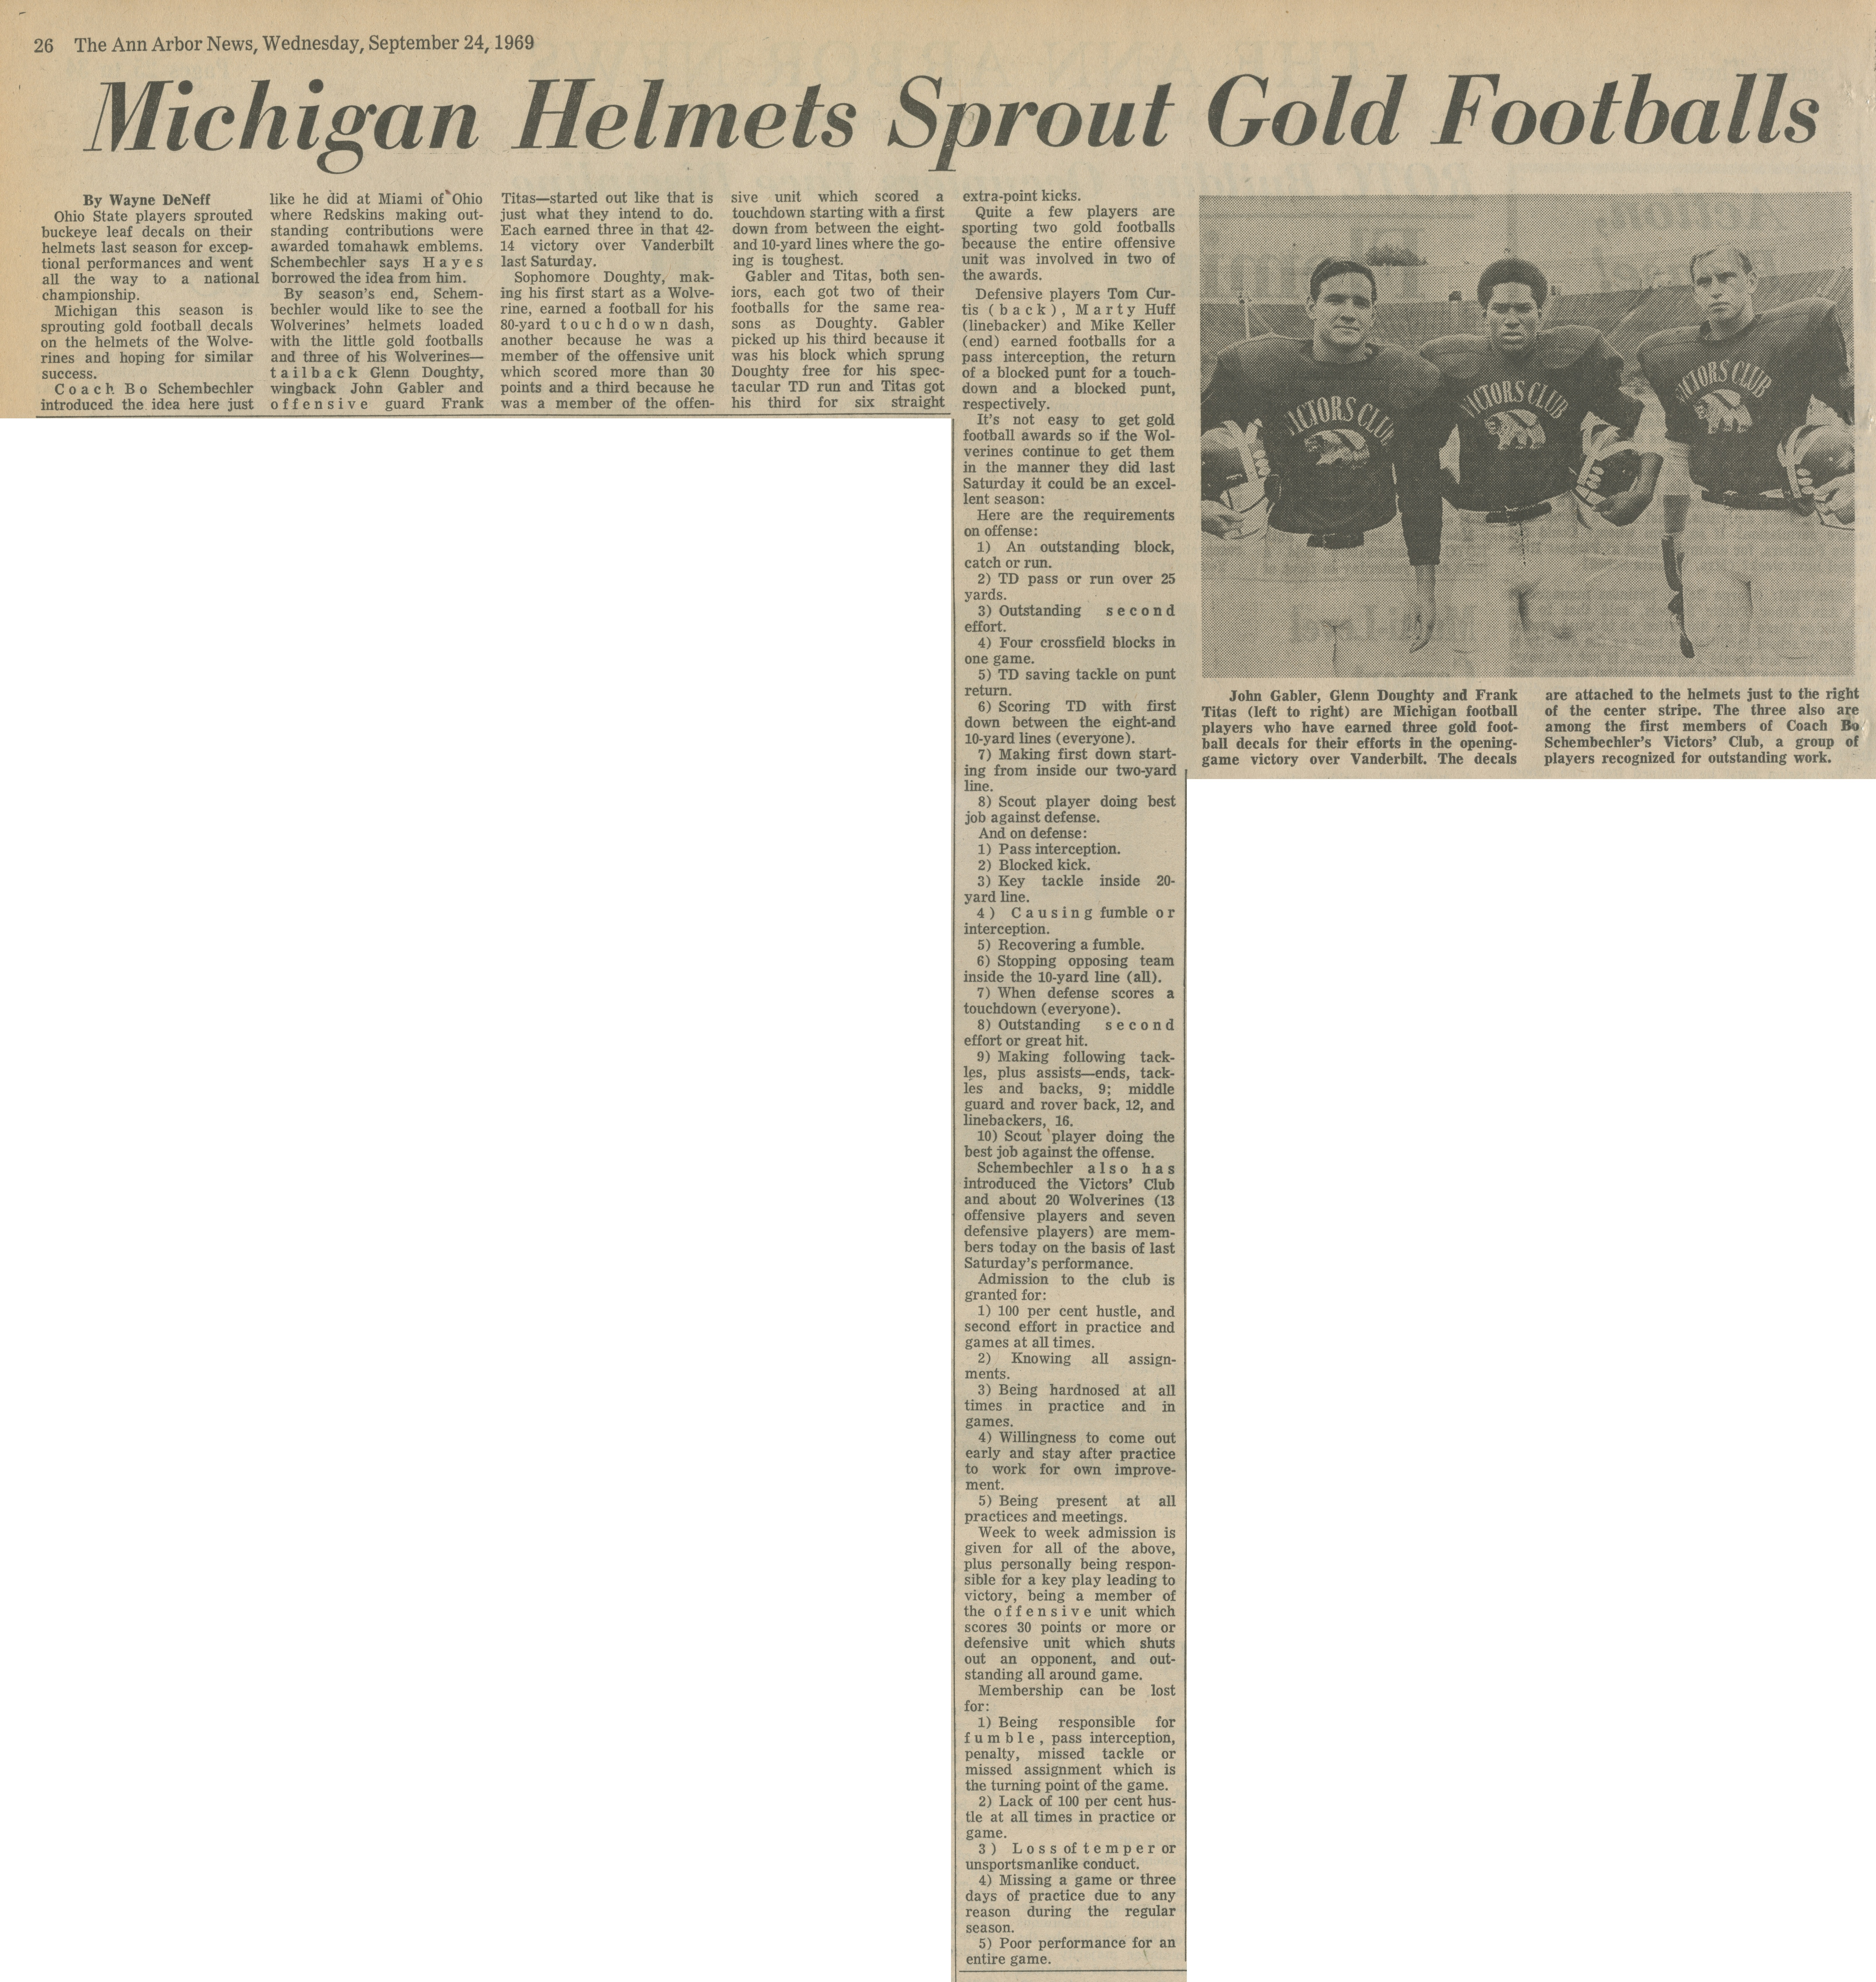 Michigan Helmets Sprout Gold Footballs image